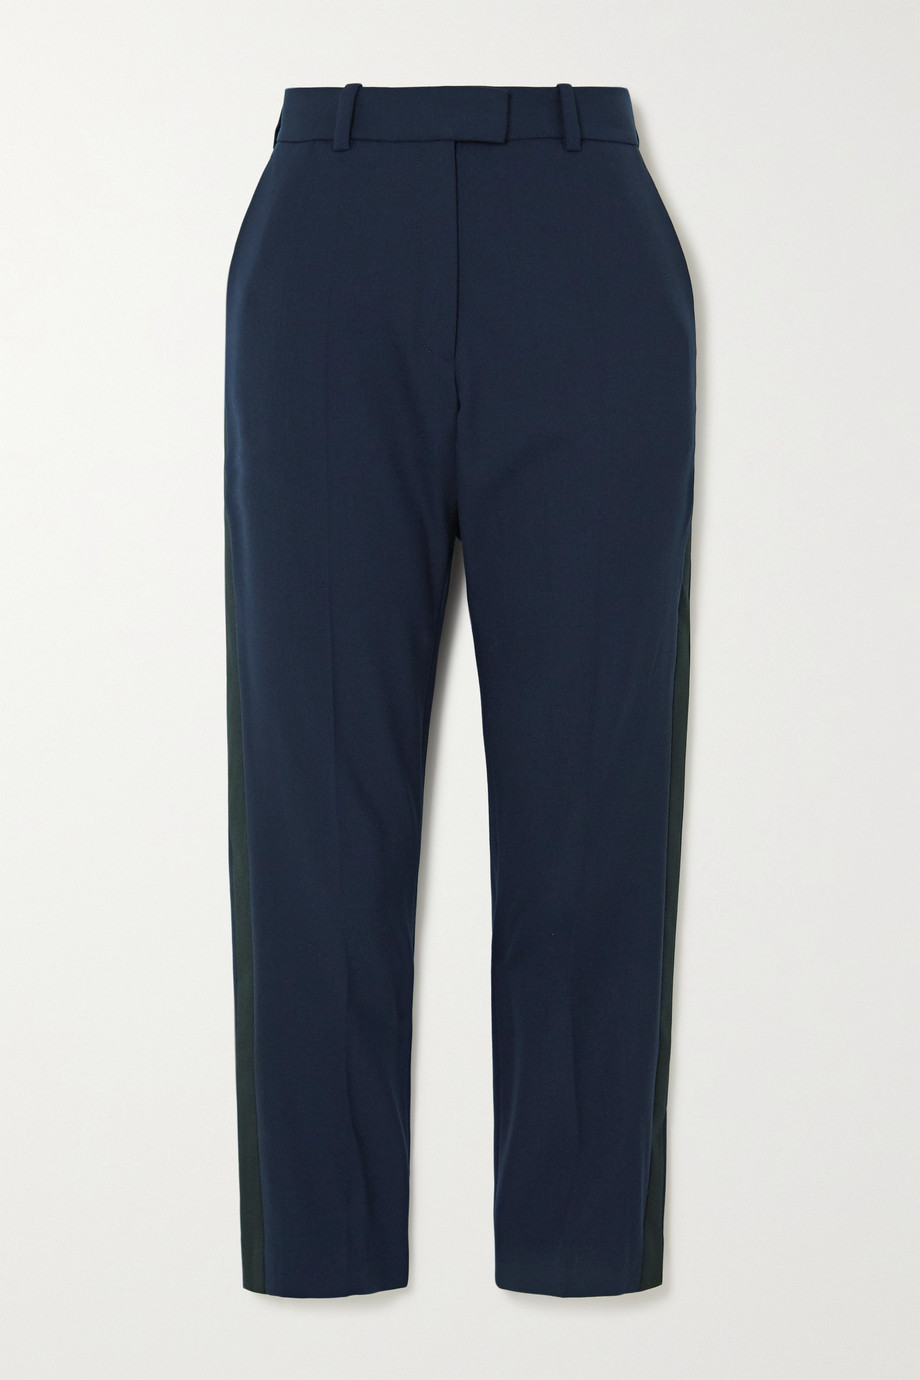 Racil Aries cropped satin-trimmed wool-blend straight-leg pants